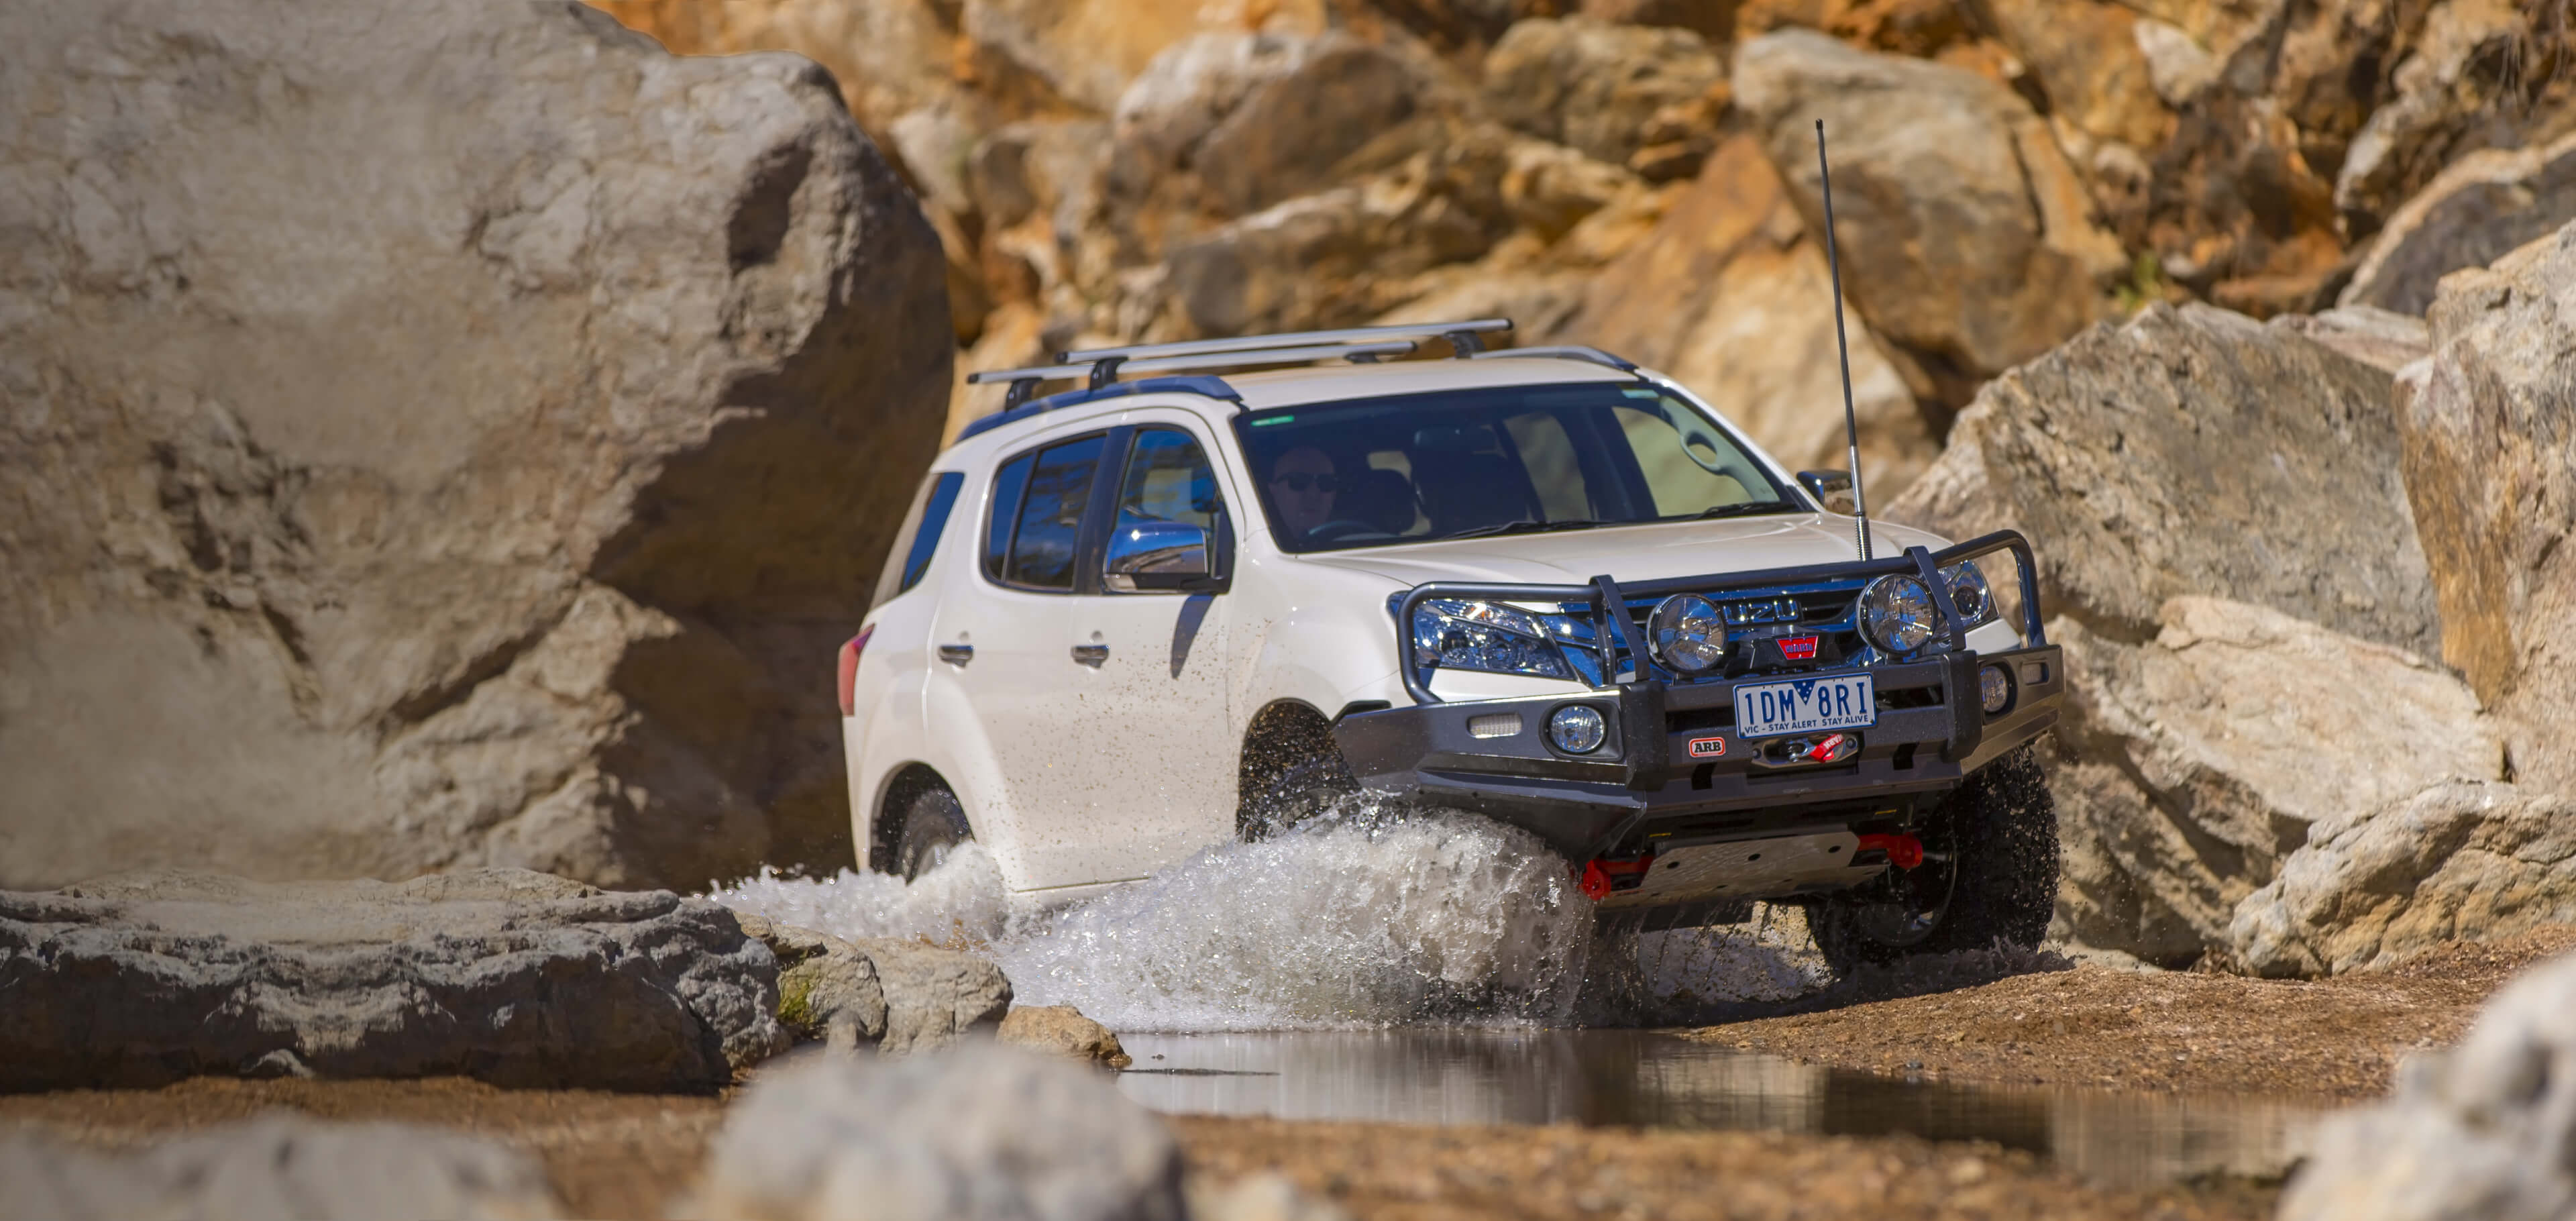 ARB 4×4 Accessories   Under Vehicle Protection - ARB 4x4 ...